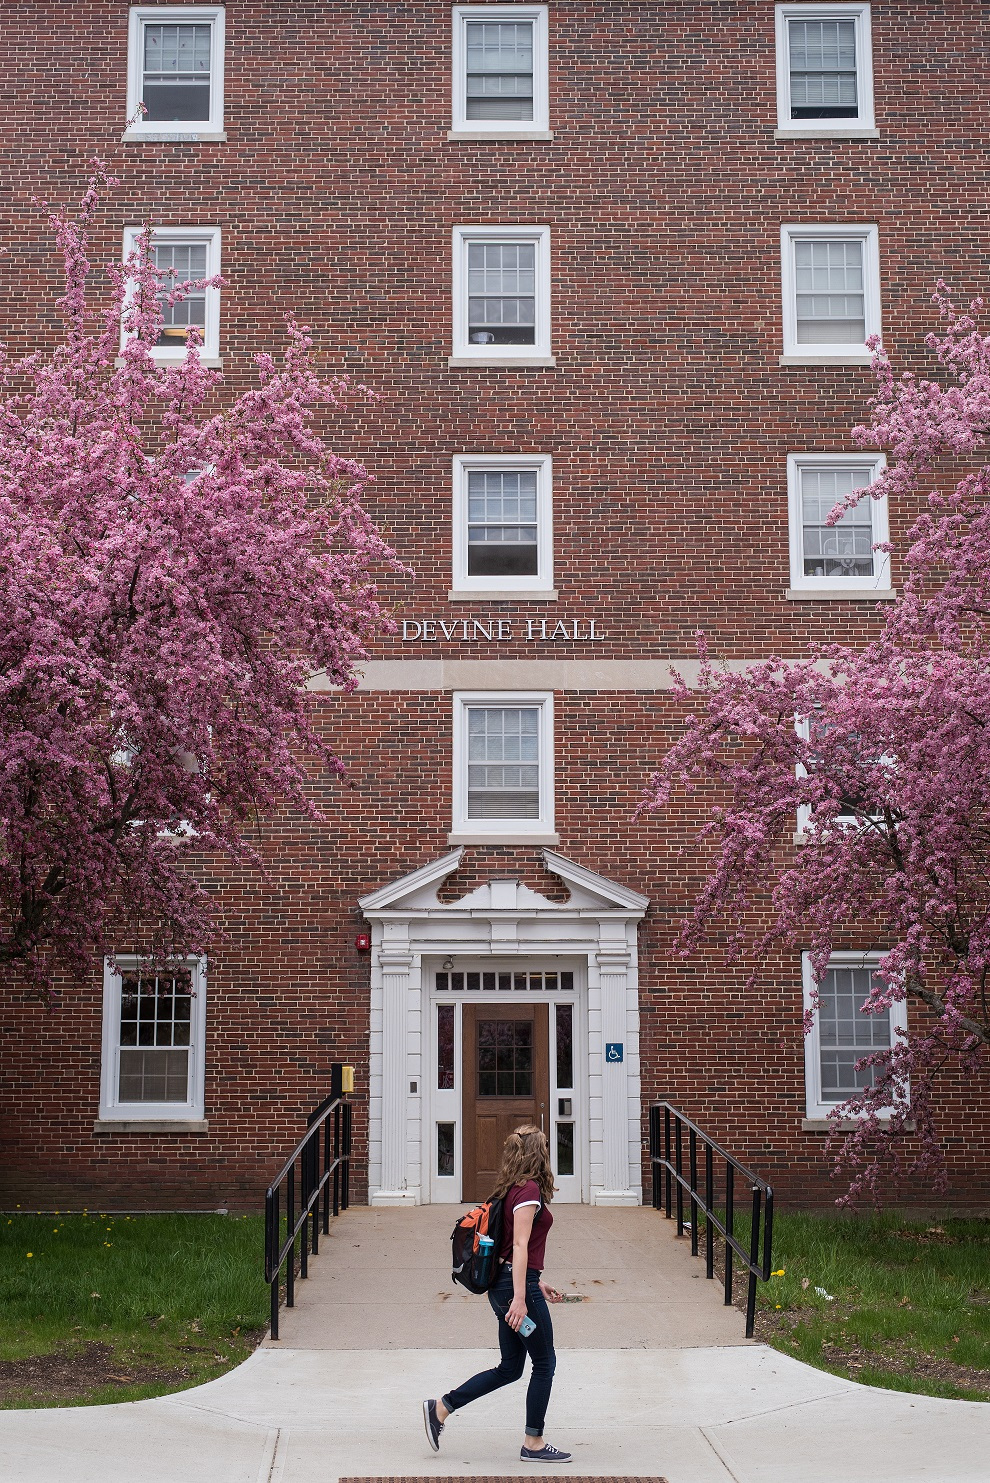 Image of student walking past Devine Hall